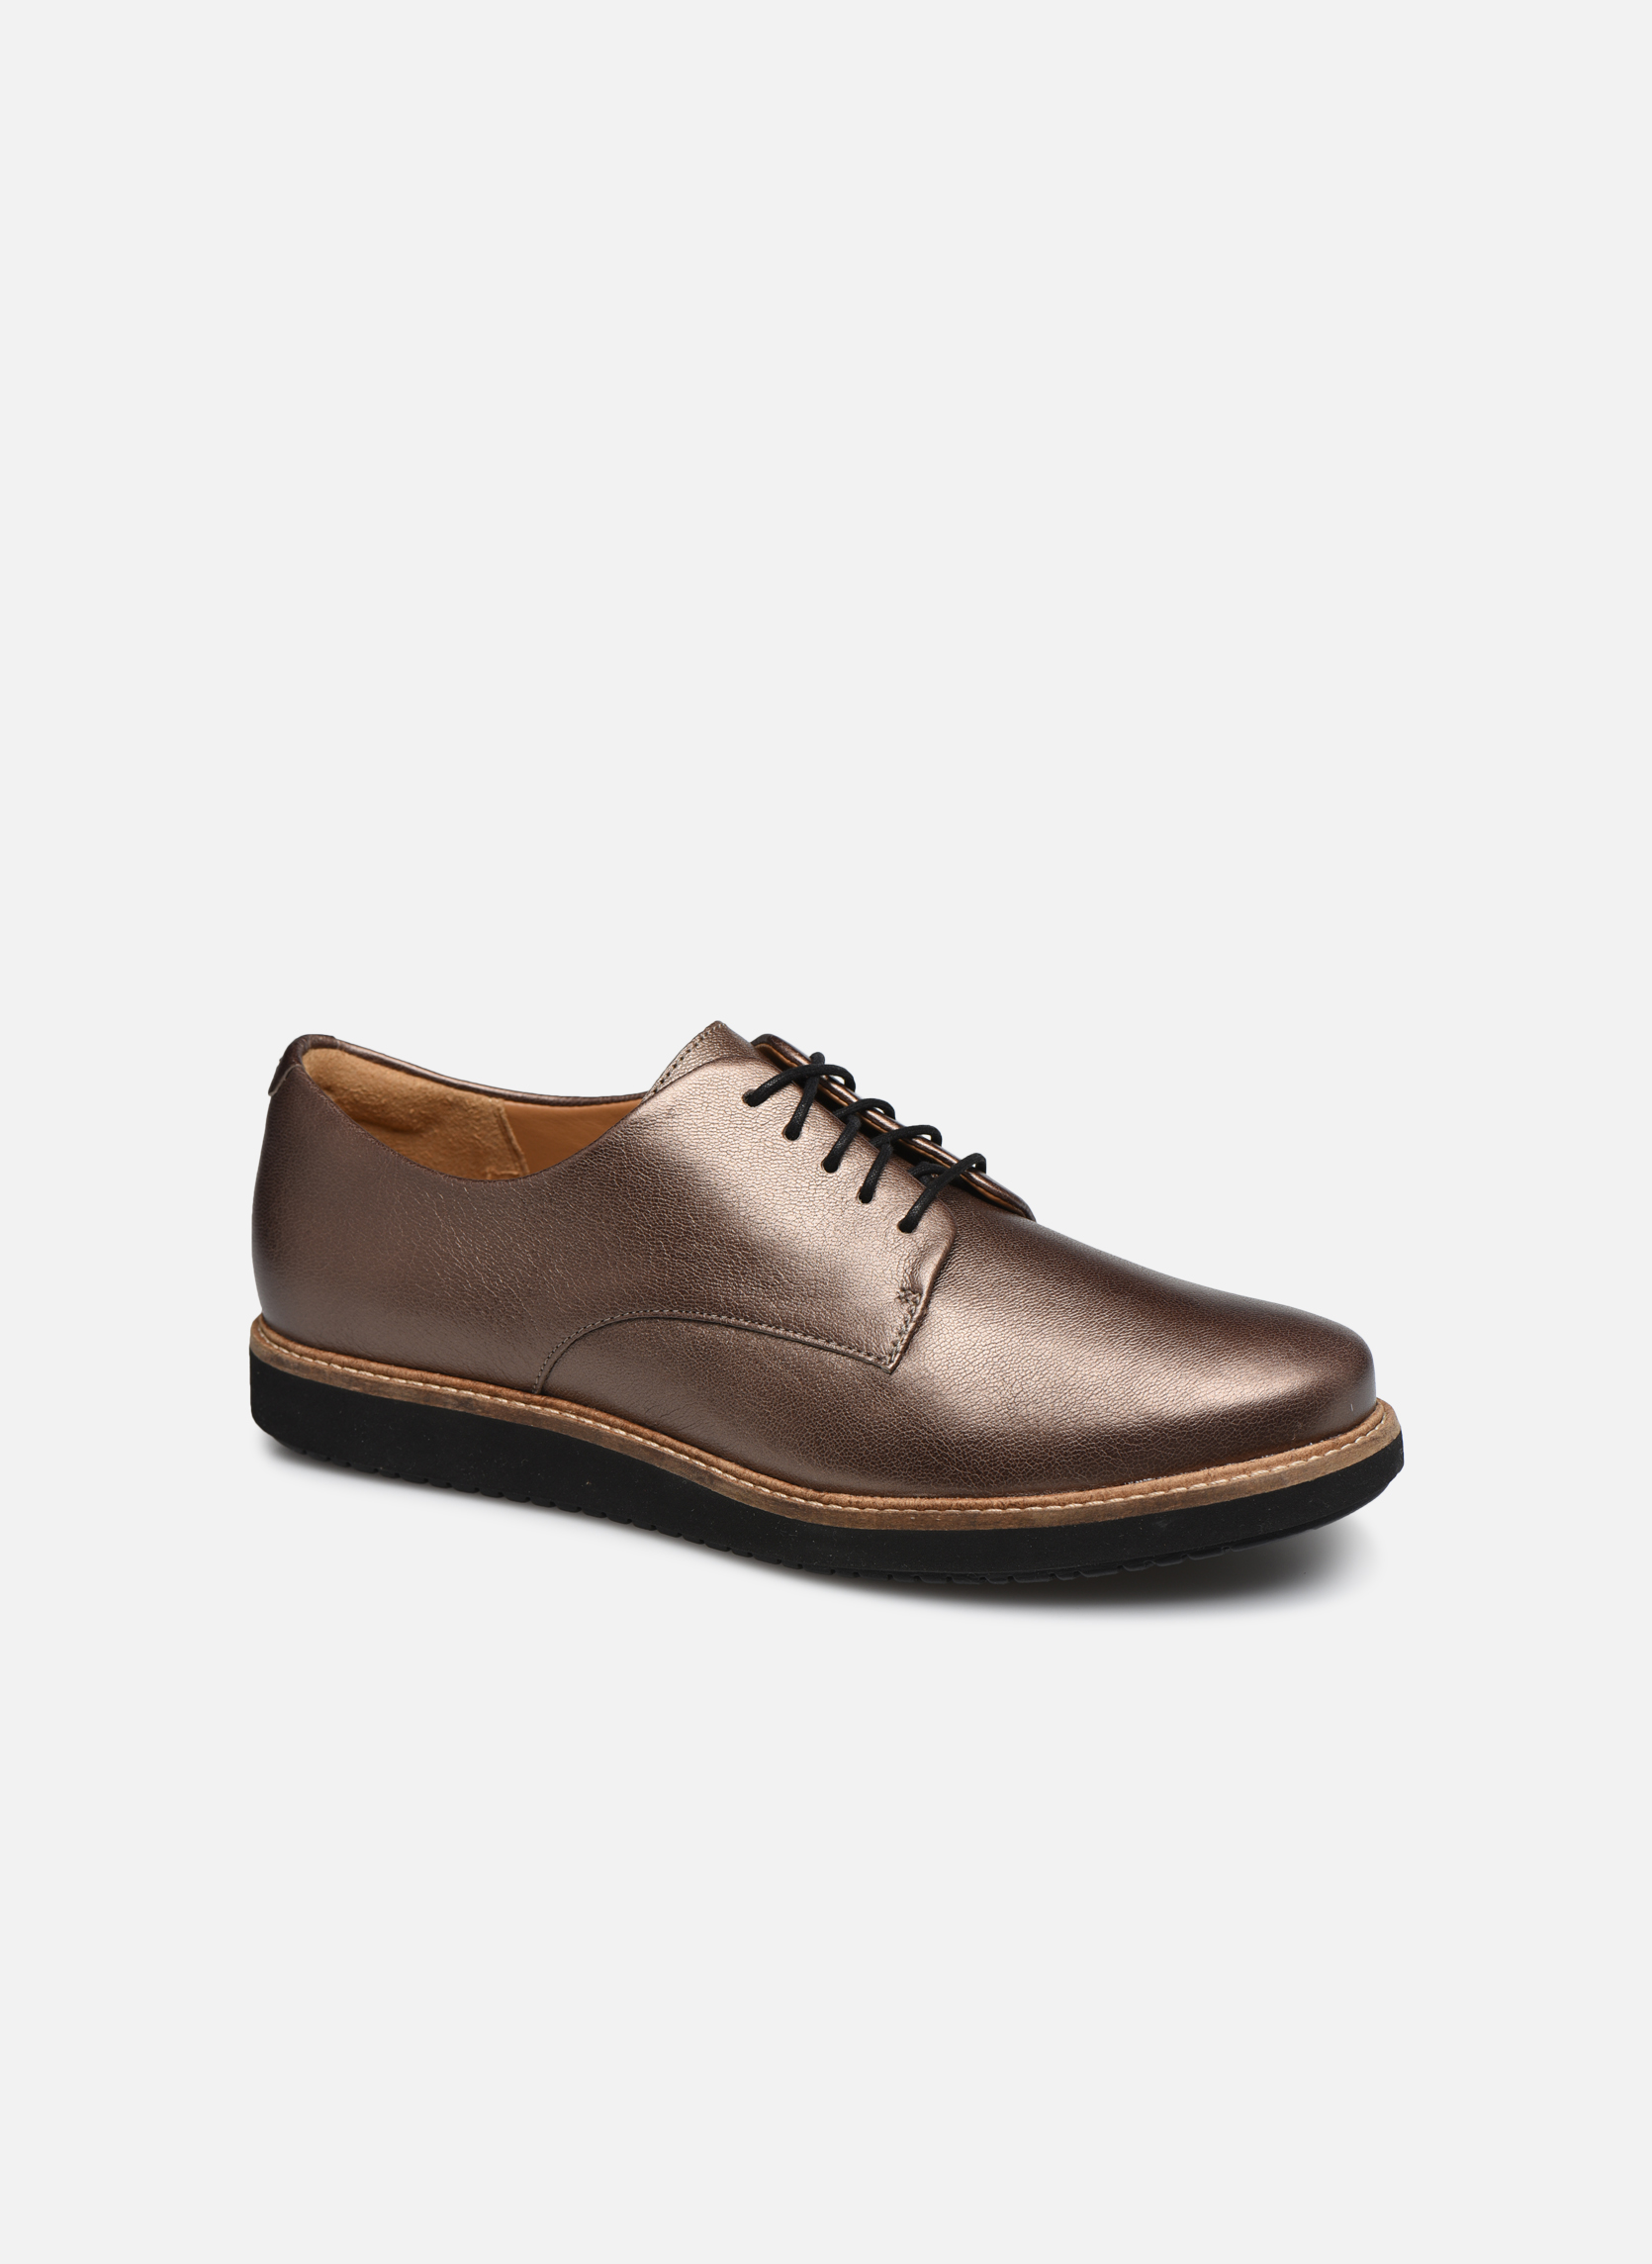 Glick Darby Pewter Leather